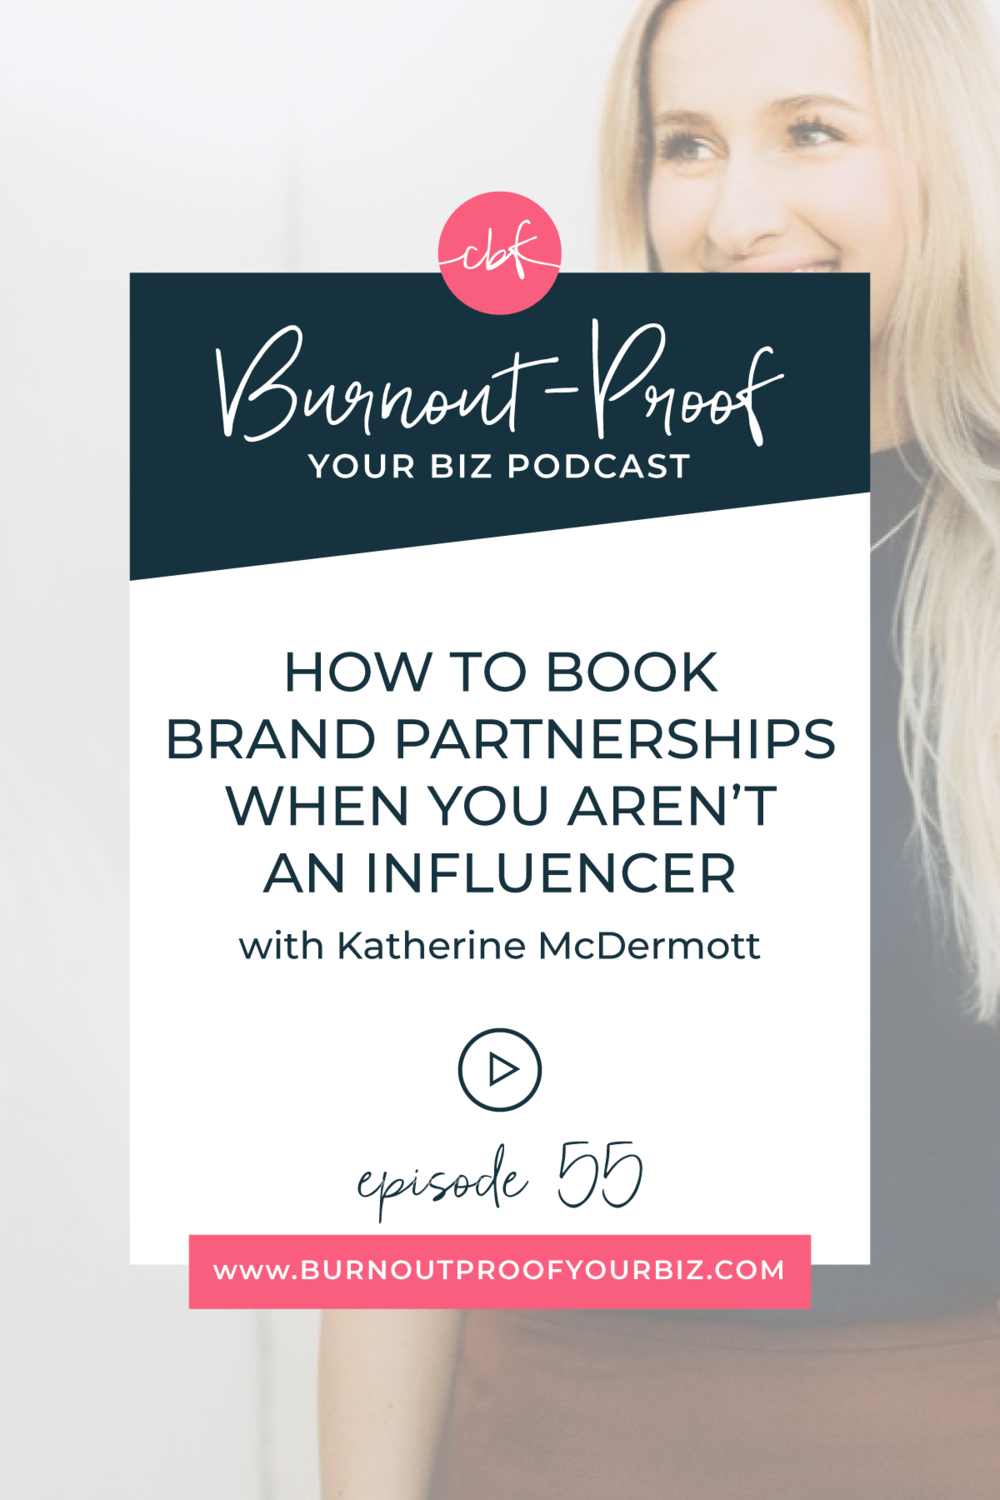 HOW TO BOOK BRAND PARTNERSHIPS WHEN YOU AREN'T AN INFLUENCER on Burnout-Proof Your Biz Podcast with Chelsea B Foster | Episode 051 - Turning Your Creative Outlet Into a Business that You Love with Ashley Hasty of Hasty Book List | Learn how to run your biz and live your dream life on your own terms without the fear of burnout. |||  FINDING YOUR CREATIVE OUTLET | HOBBY TO BUSINESS | HOBBY OR BUSINESS | CREATING A BUSINESS YOU LOVE | FINDING JOY | SPARK JOY | WHAT TO DO WHEN YOU'RE BURNING OUT | LETTING GO OF SOMETHING YOU LOVE BUT ISN'T WORKING | GOING FROM PART-TIME BLOGGER TO FULL-TIME BLOGGER | BLOGGER ORGANIZATION | ORGANIZATION FOR BLOGGERS | HOW TO ORGANIZE YOUR CONTENT CALENDAR | HOW TO TURN YOUR HOBBY OF READING INTO A BUSINESS | BUSINESS COACH | WORKFLOW & PRODUCTIVITY SPECIALIST | SYSTEMS & ORGANIZATION SPECIALIST FOR COACHES | ADD MORE FREEDOM TO YOUR LIFE | BUSINESS COACH FOR BLOGGERS